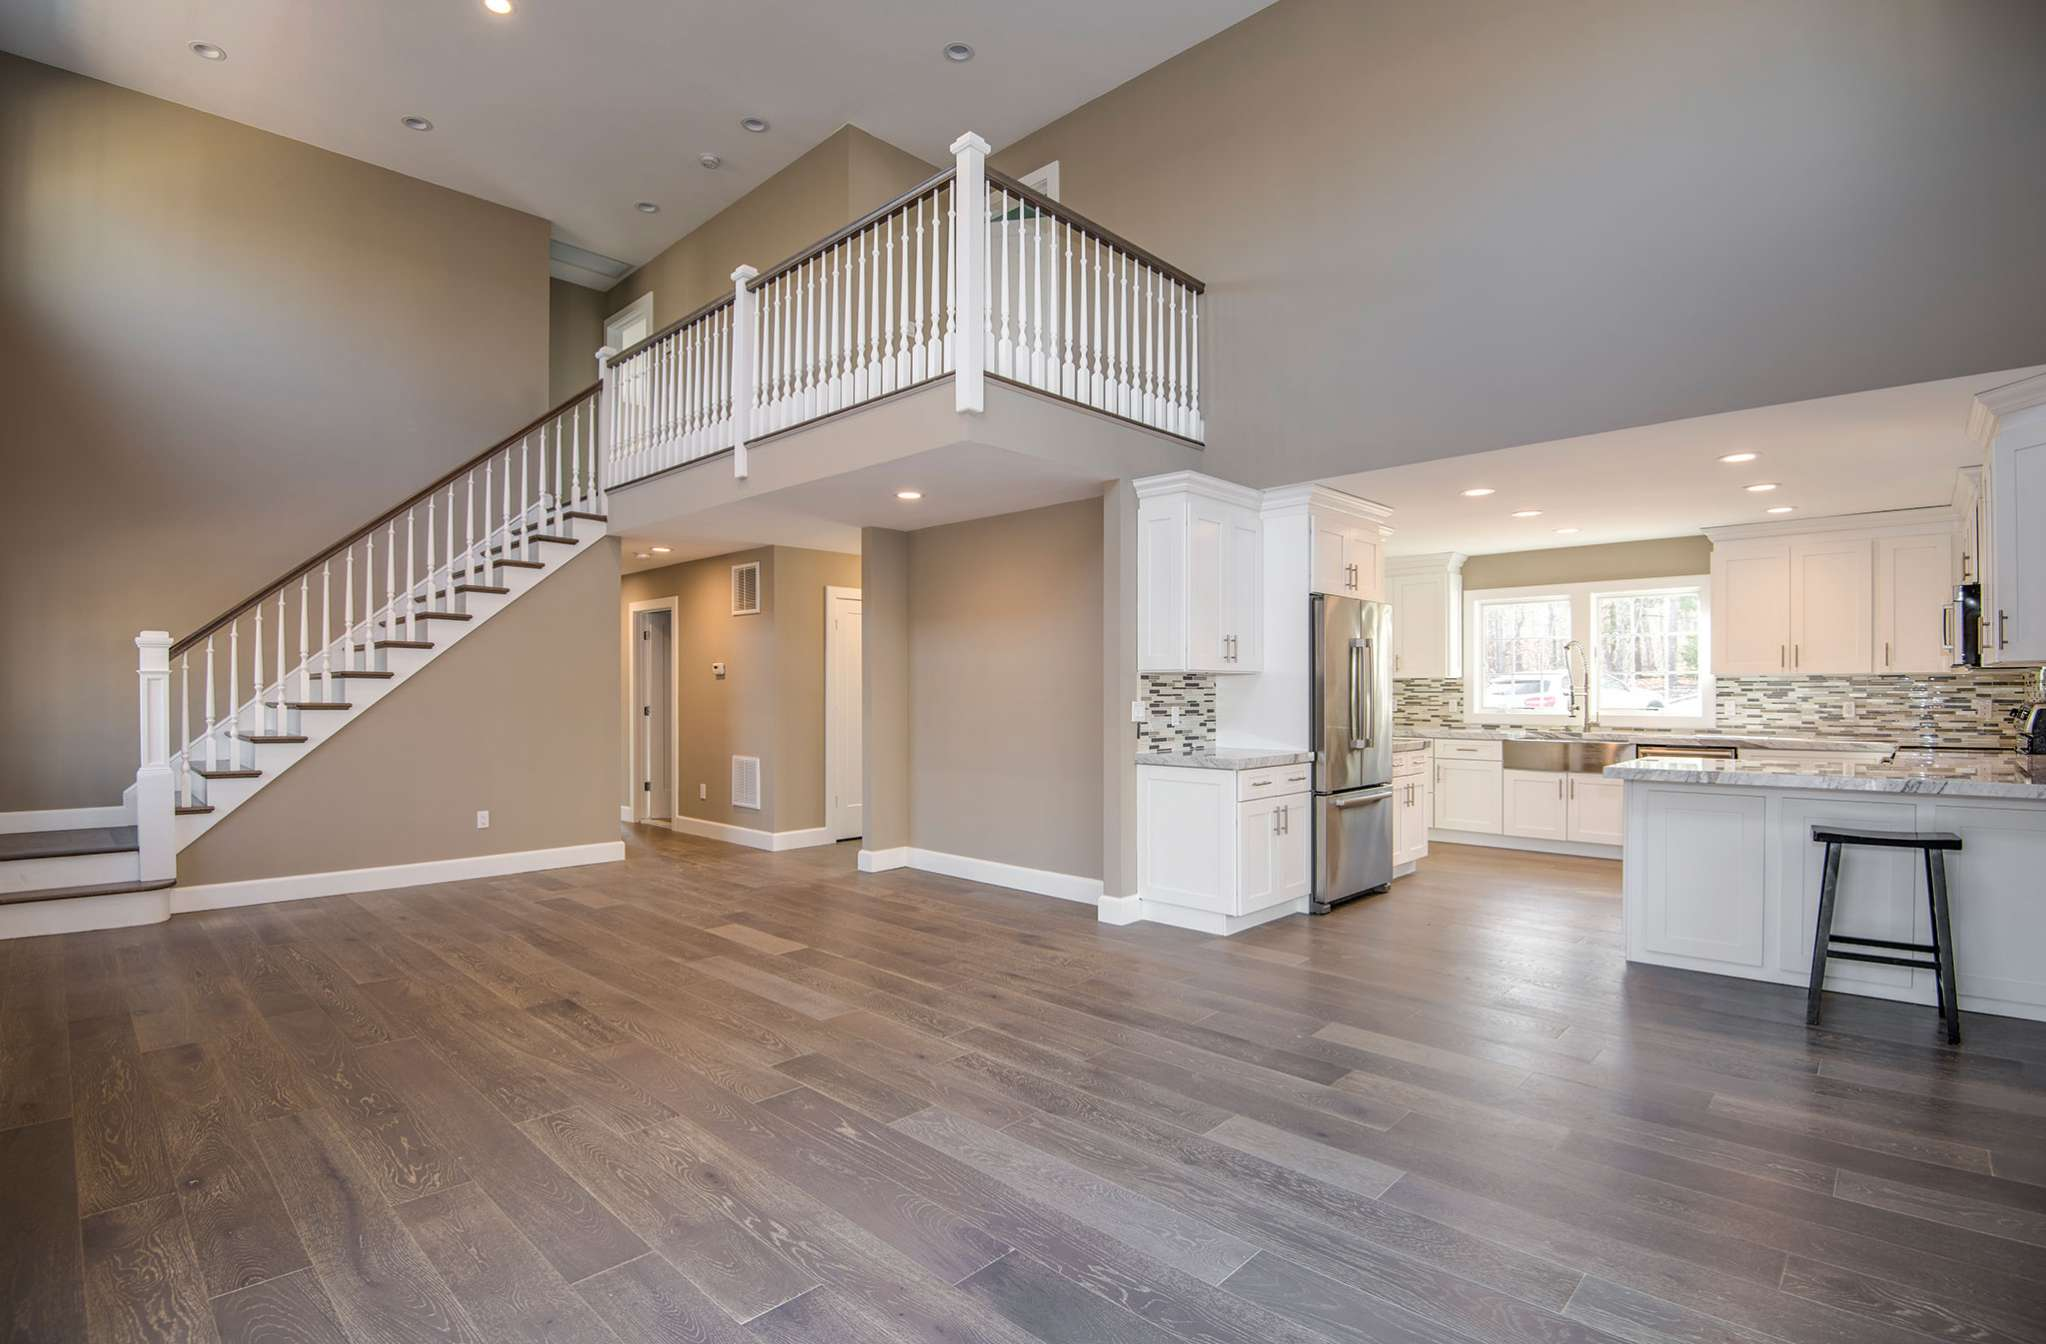 Single Family Home for Sale at New Construction With Beach And Mooring Rights Sag Harbor, New York